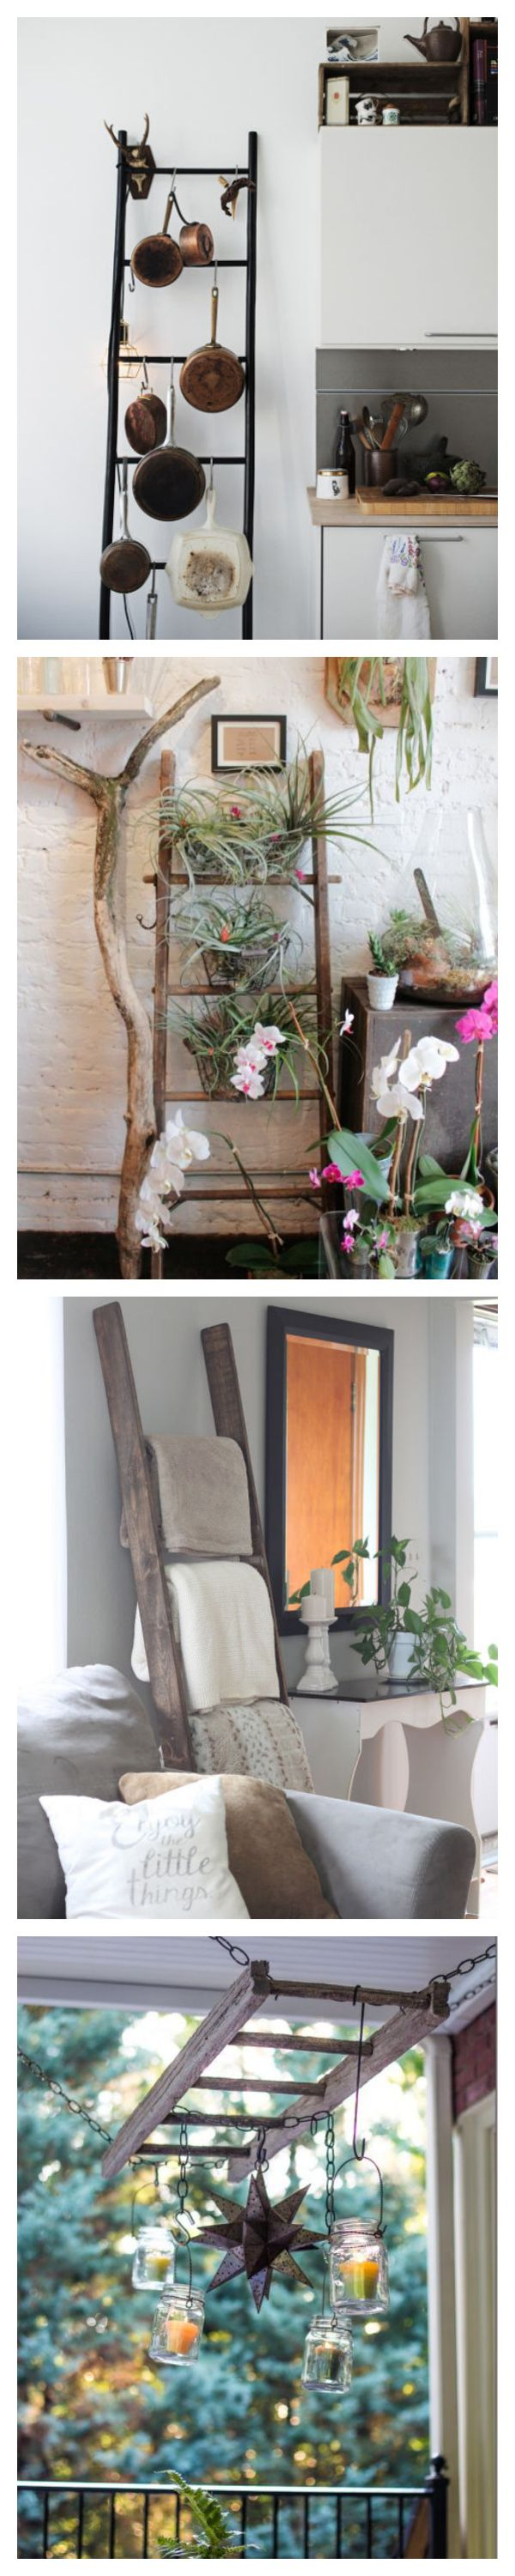 Best 25+ Old ladder ideas on Pinterest | Old ladder decor, Old ladder shelf  and Decorating with ladders